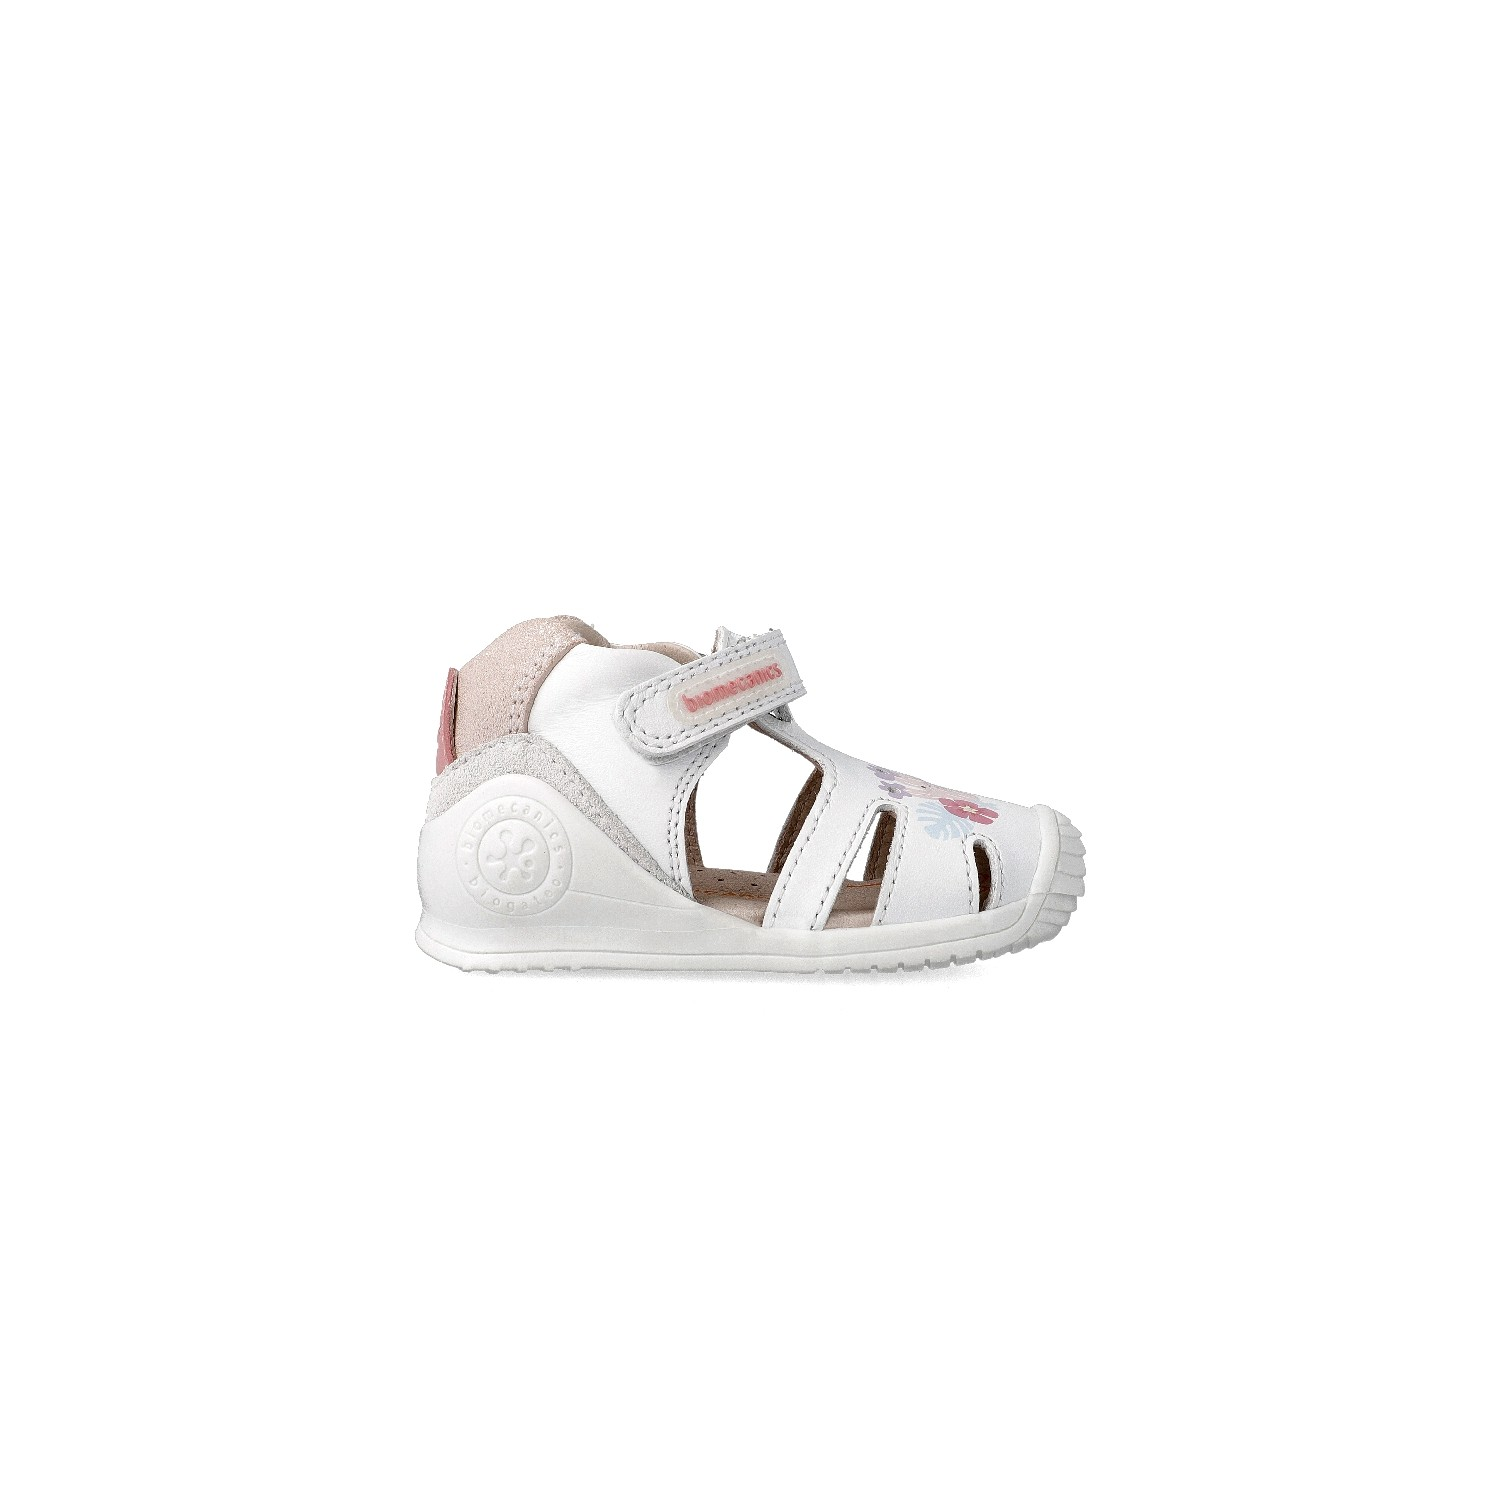 Leather sandals for girl Daphne